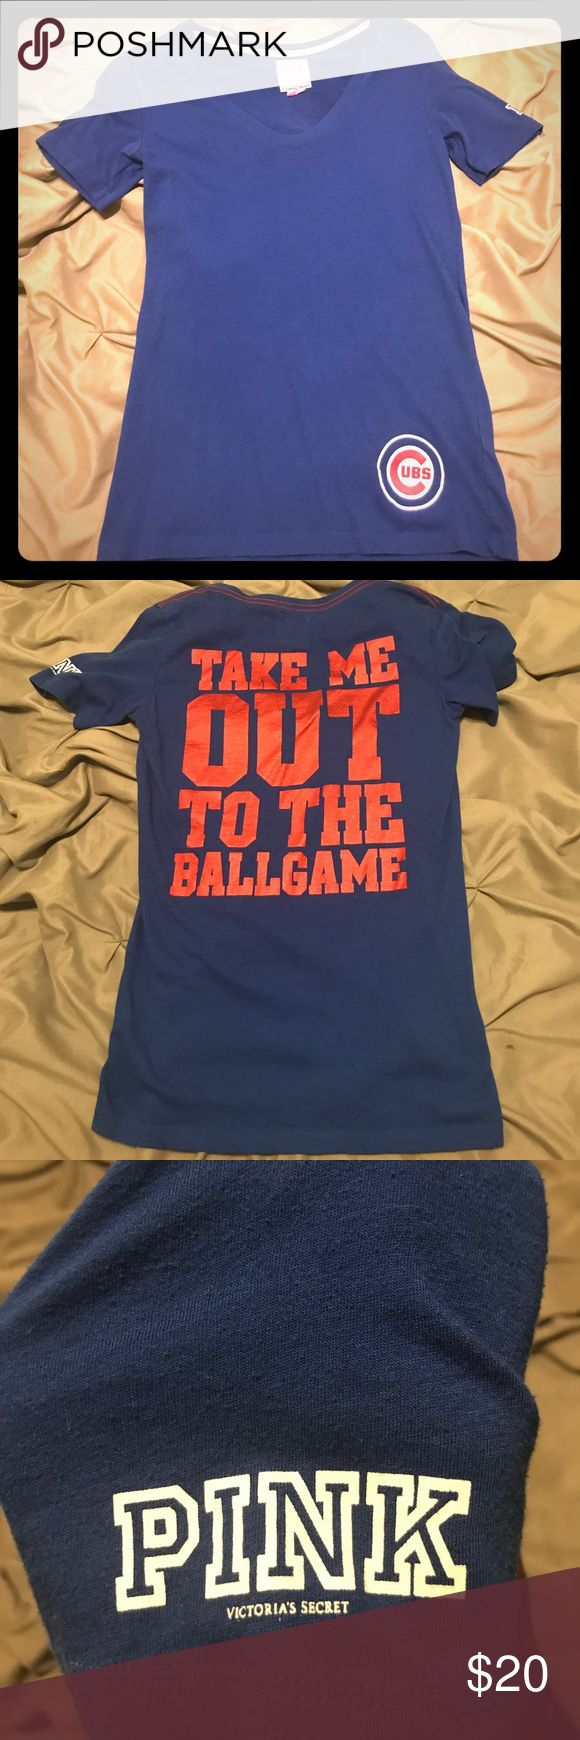 """Pink Victoria Secret Chicago Cubs T-Shirt Pink Victoria Secret Chicago Cubs T-Shirt. Worn a few times. Great condition. Royal blue with Cubs logo on bottom left of the front and """"Take me out to the ballgame"""" in red on the back. Size M PINK Victoria's Secret Tops Tees - Short Sleeve"""